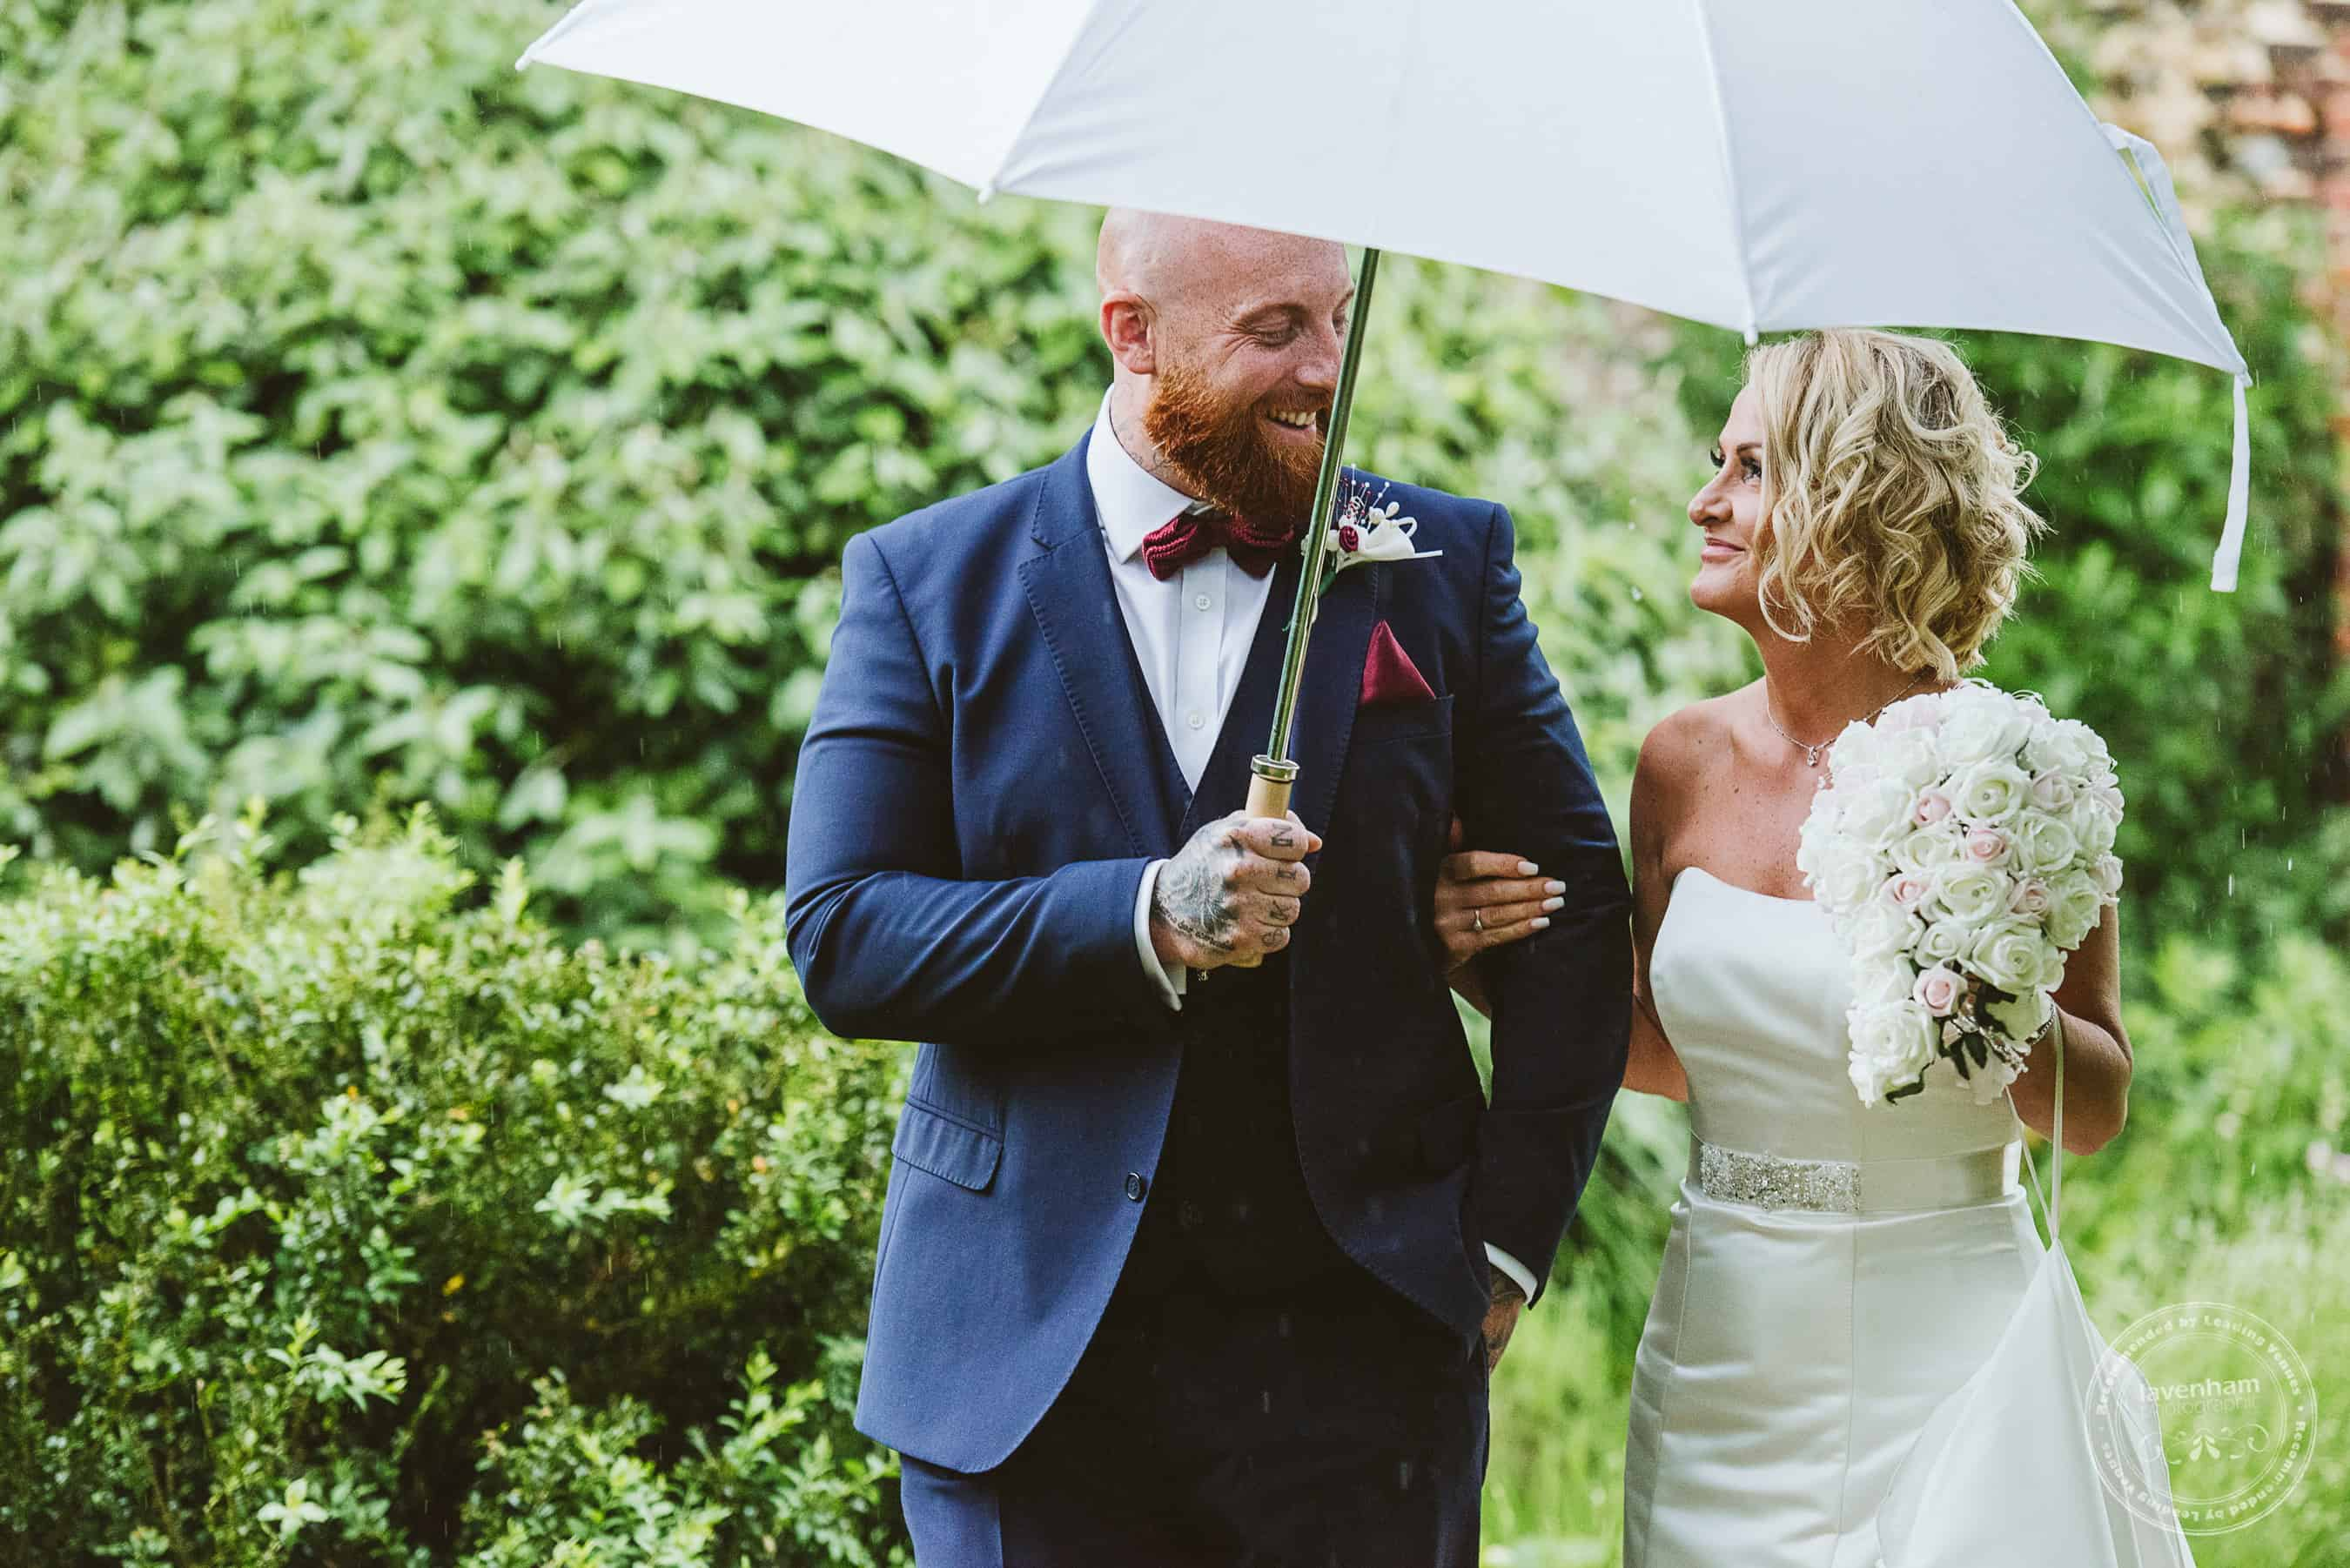 290518 Leez Priory Wedding Photography Lavenham Photographic 085